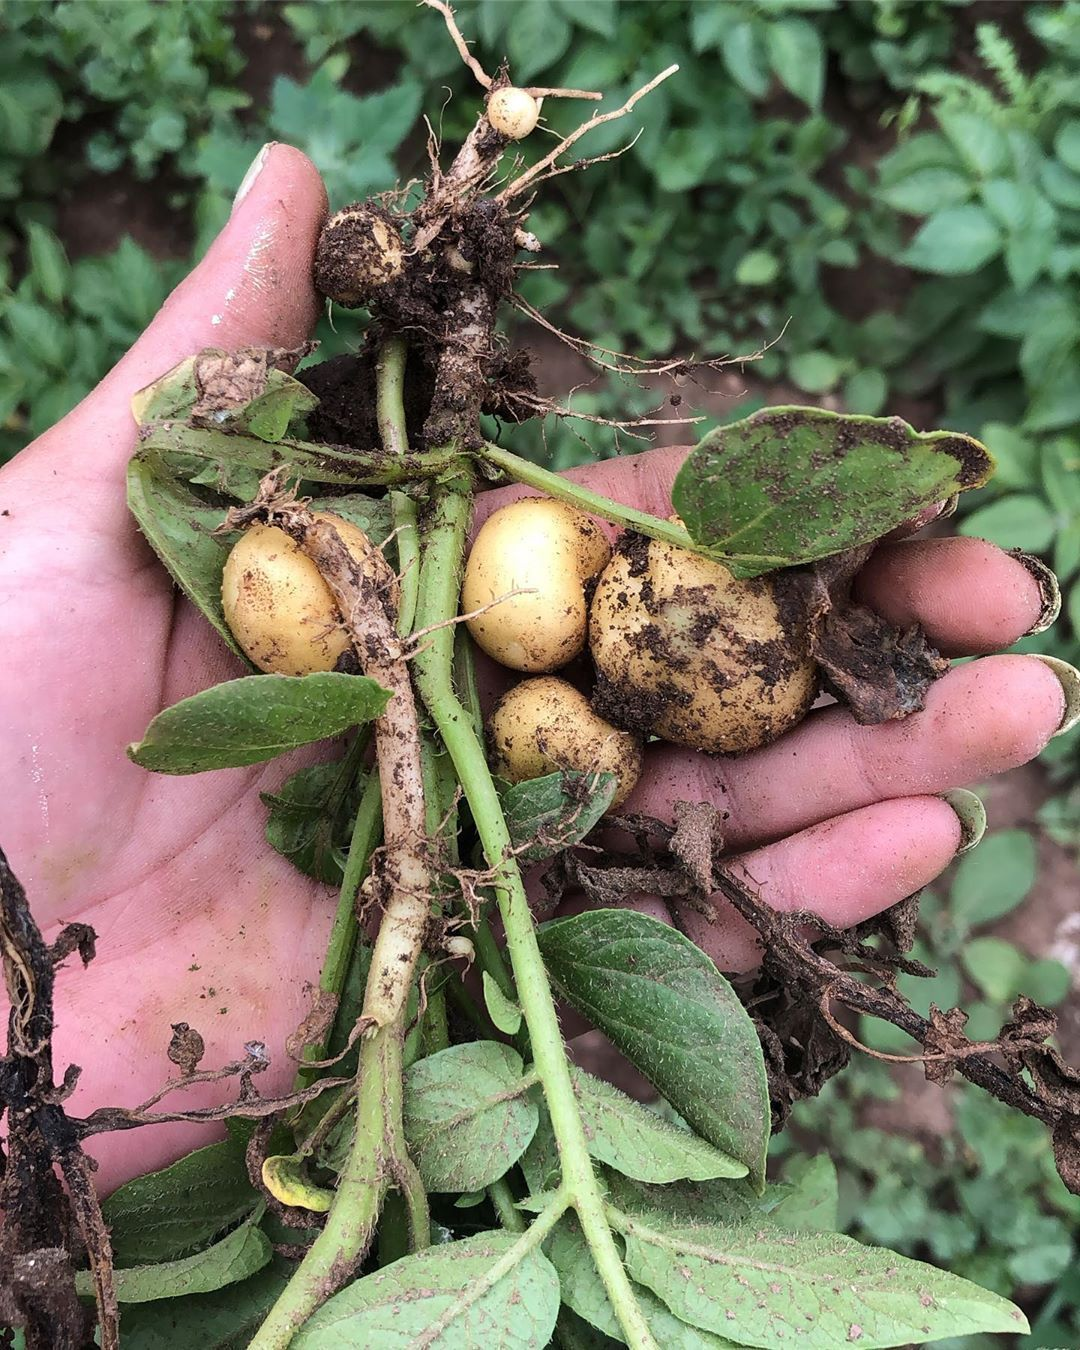 How Long Does It Take To Grow Potatoes This Is The Truth Exposed Growingpotatoes How Long Does It Take To Grow Potatoes I Growing Potatoes Potatoes Growing